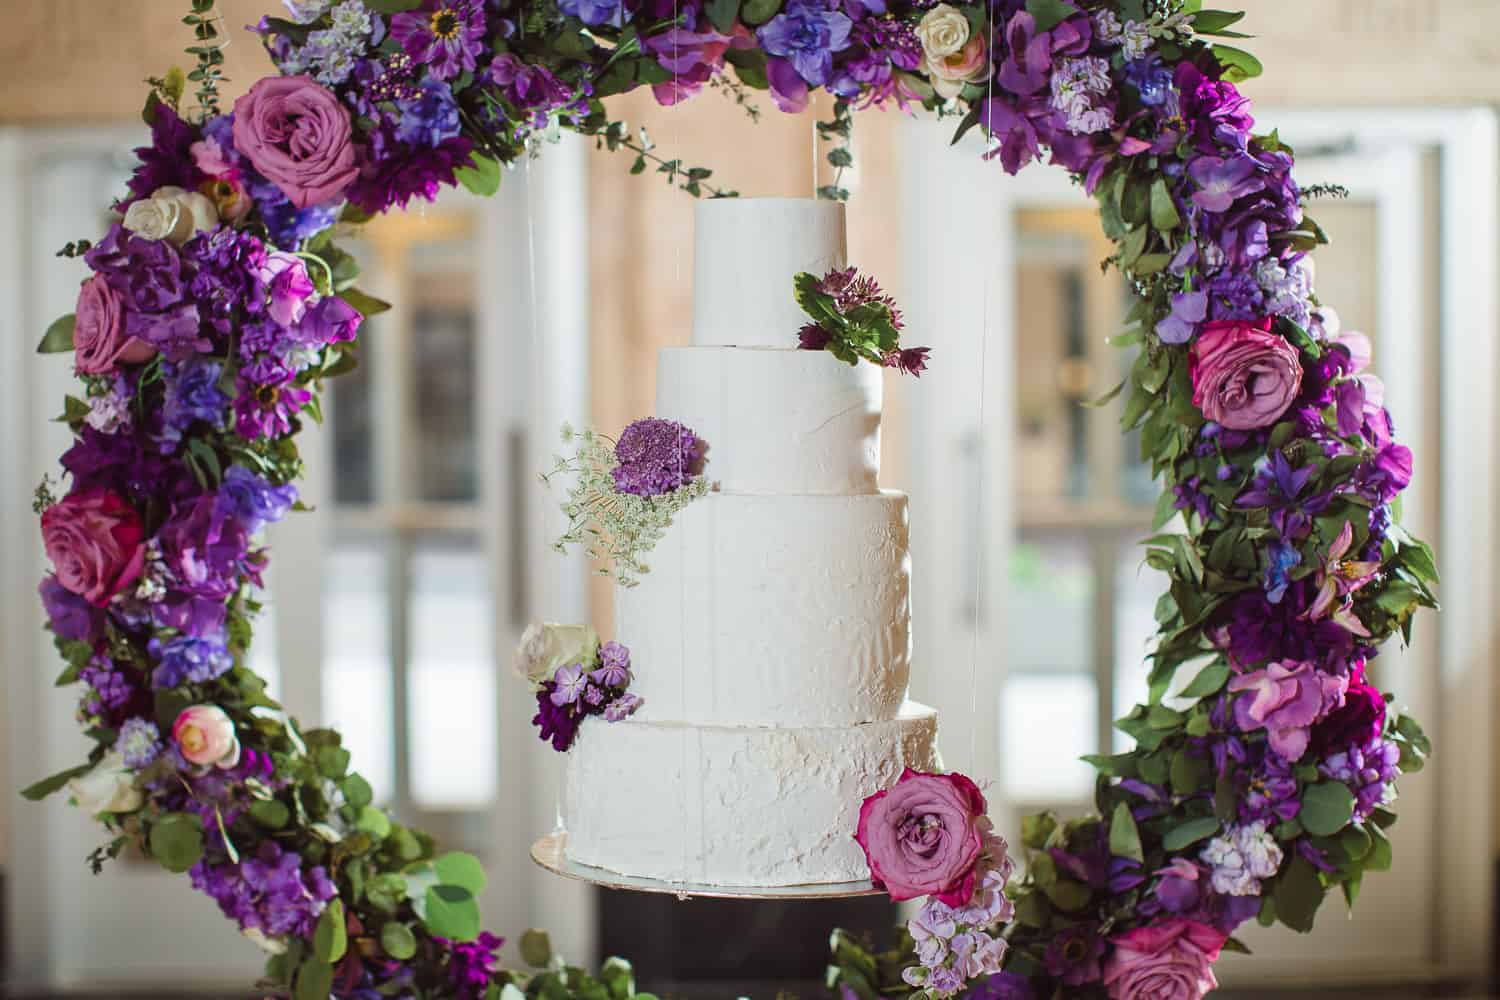 Floating wedding cake by Crumbs and Confections